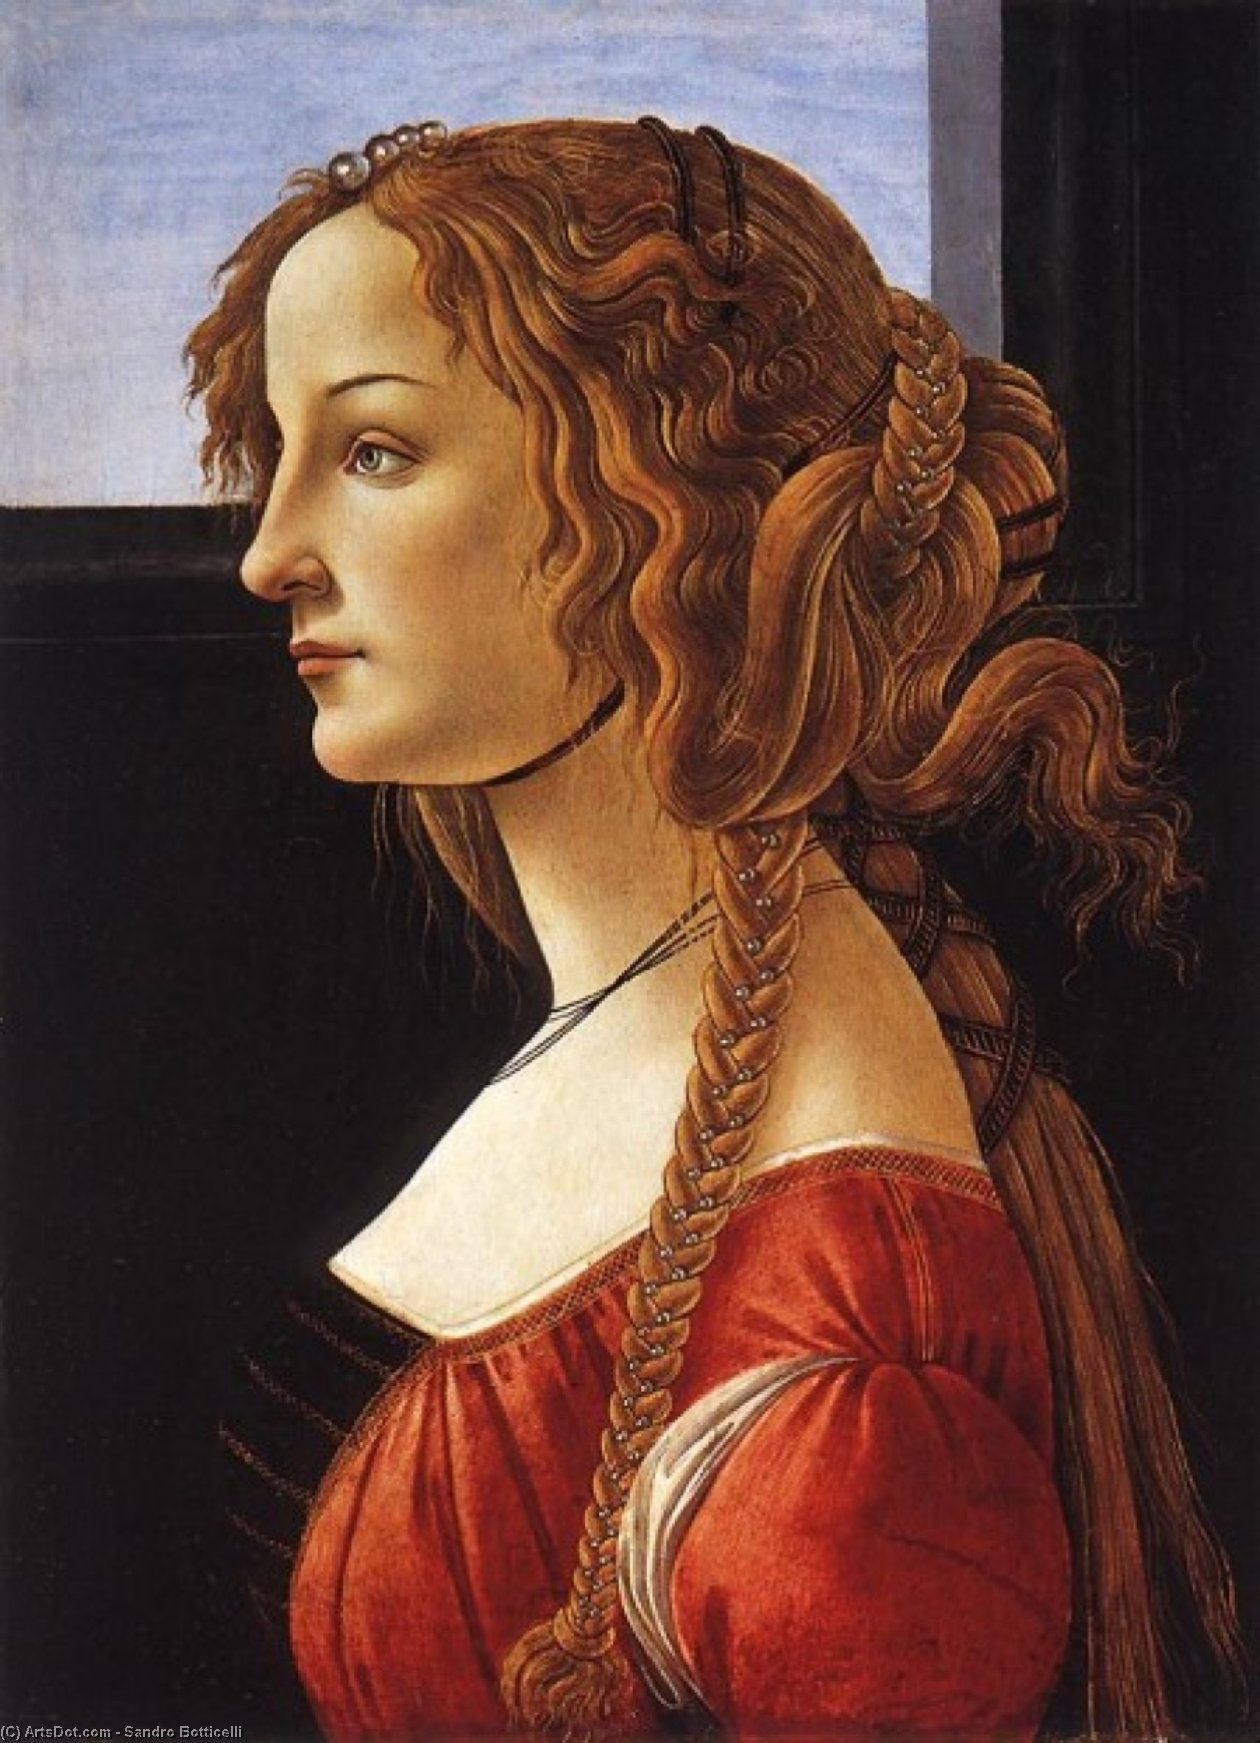 Wikioo.org - The Encyclopedia of Fine Arts - Painting, Artwork by Sandro Botticelli - Portrait of a Young Woman